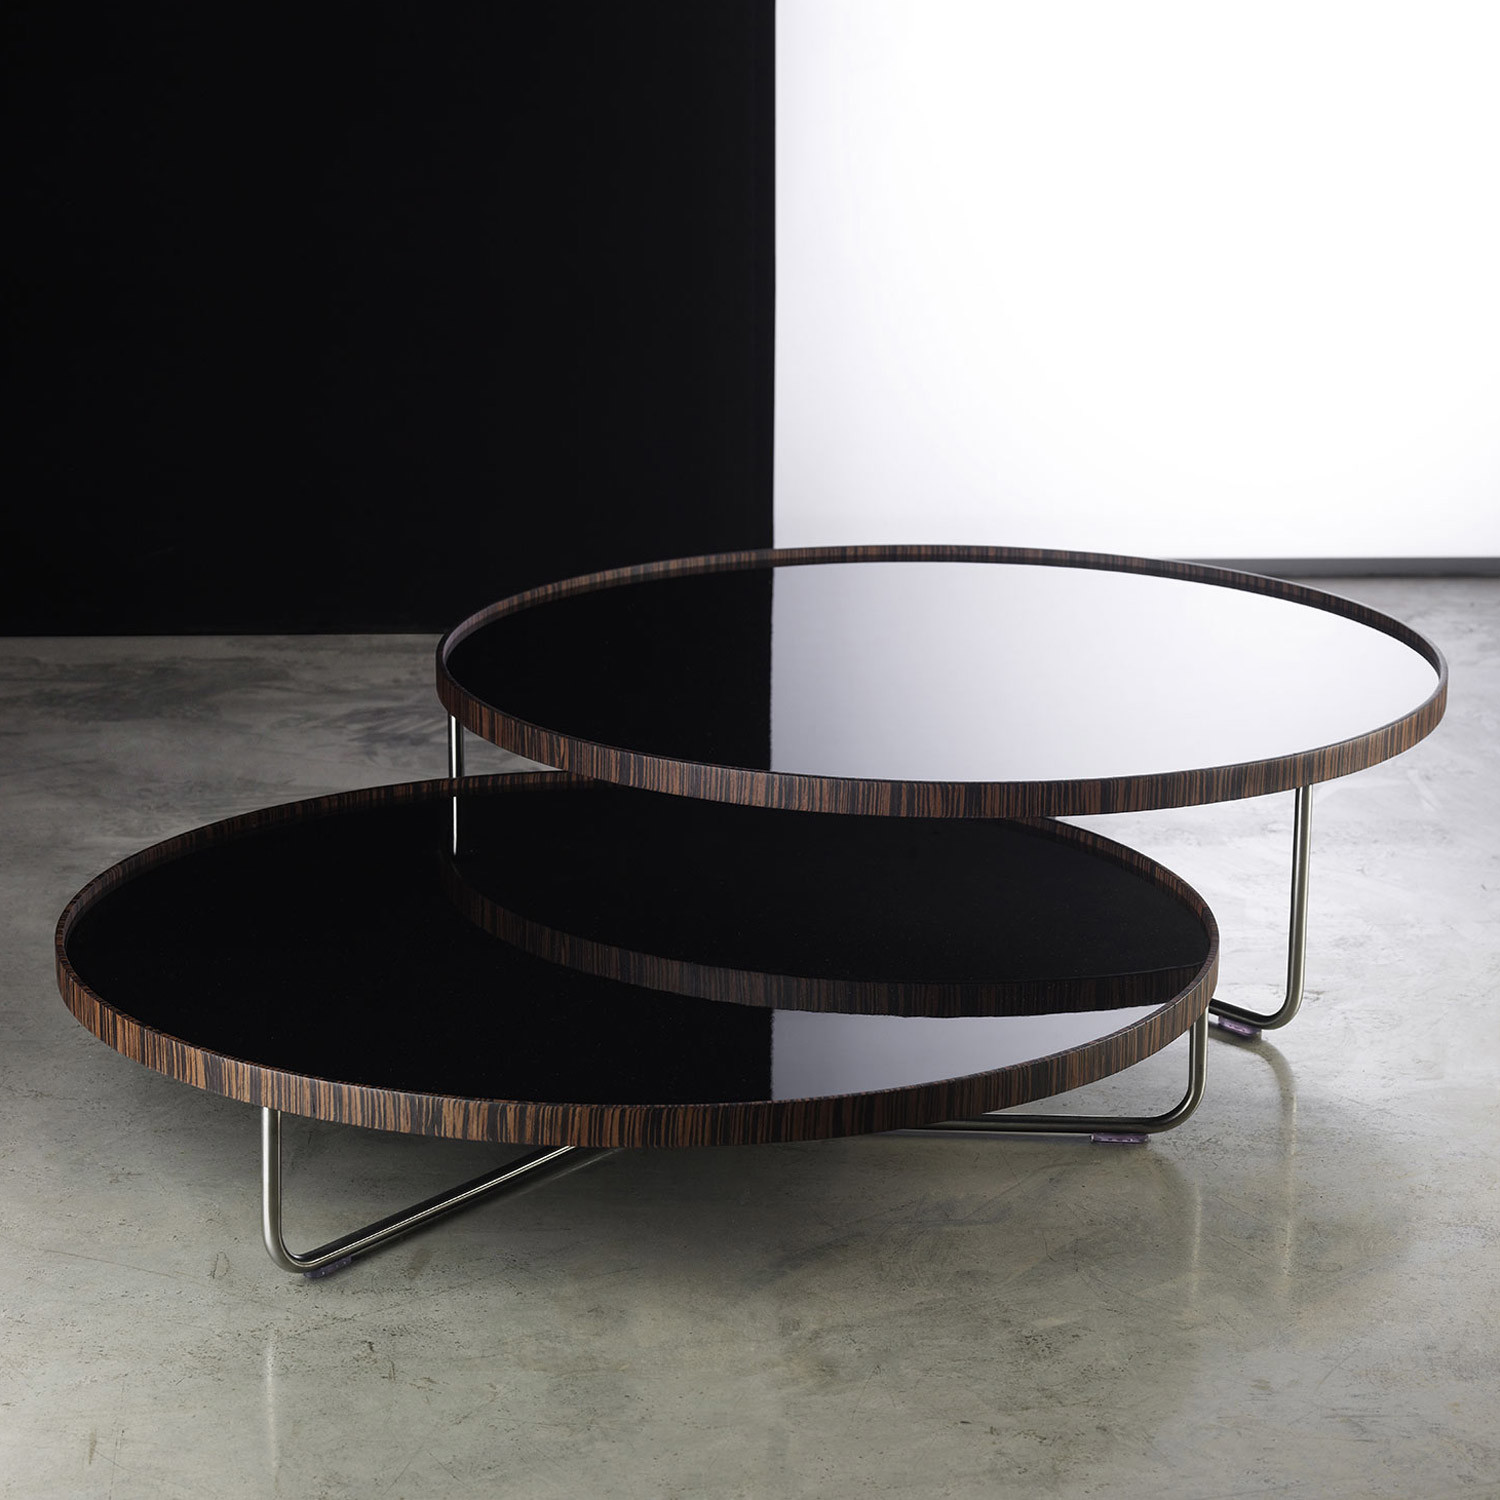 Enjoyable Adelphi Nesting Coffee Tables Black Modloft Touch Of Caraccident5 Cool Chair Designs And Ideas Caraccident5Info